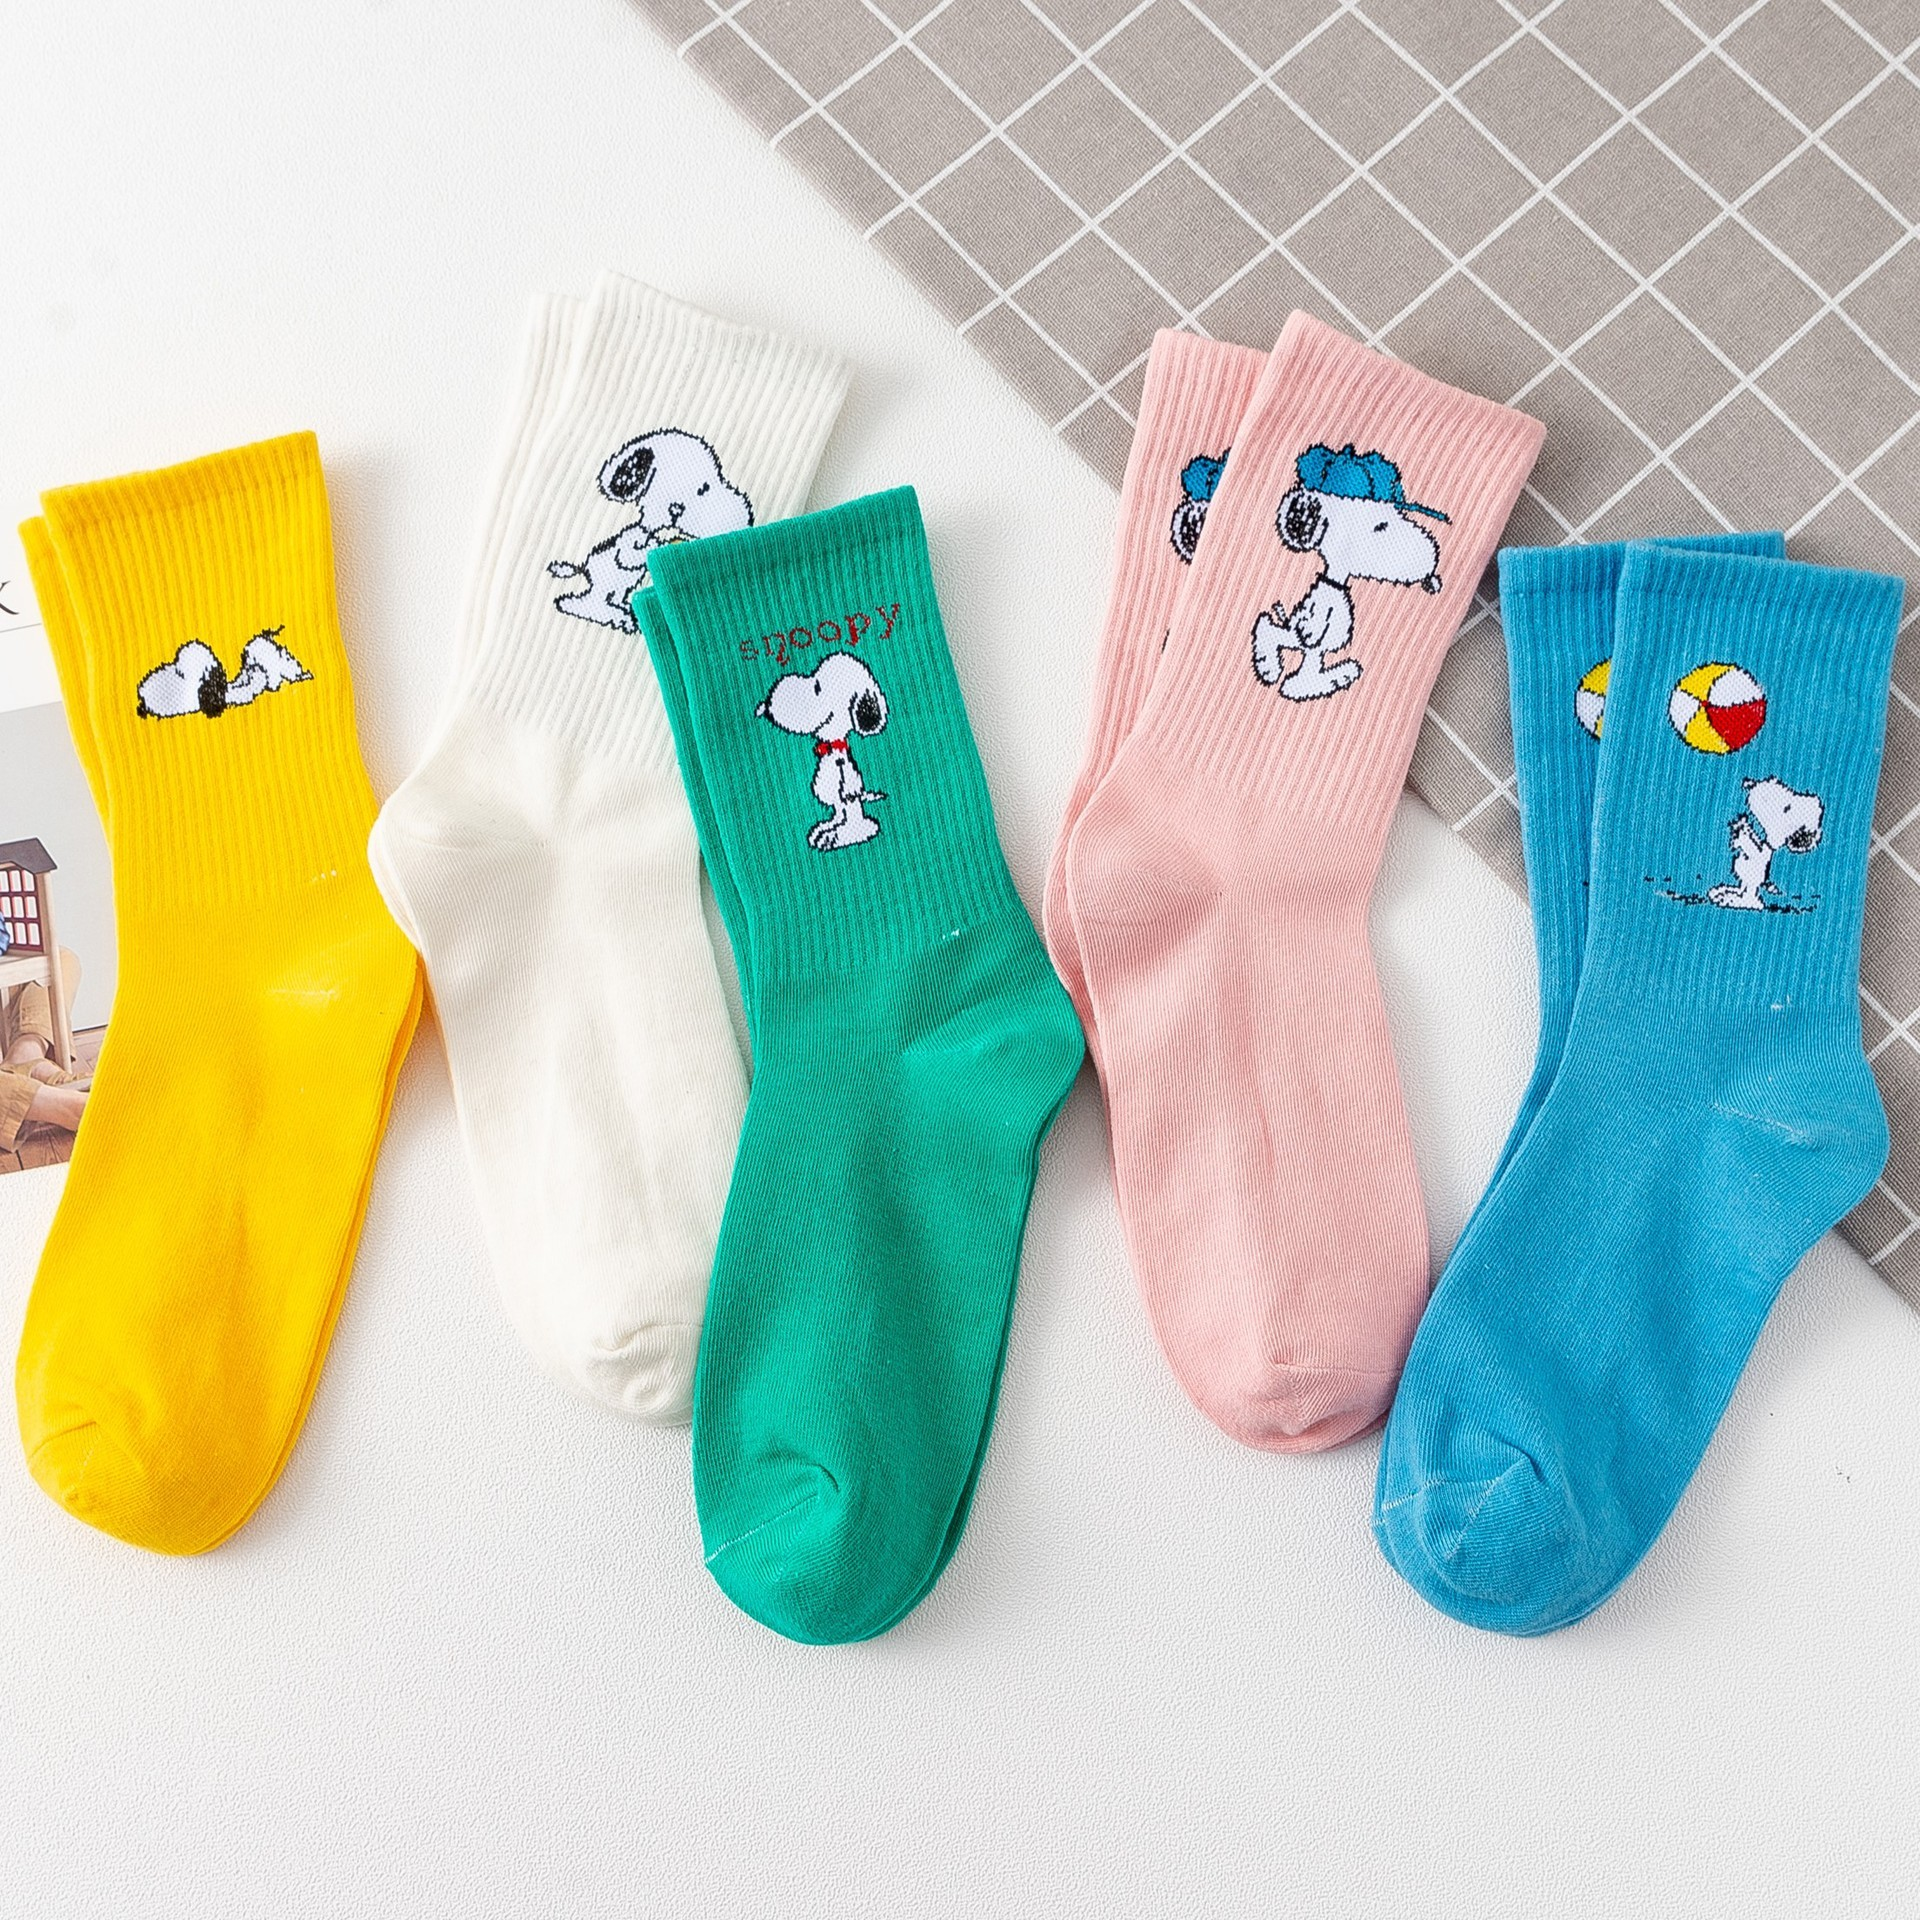 New Arrival Japanese Harajuku Cute Cartoon Socks Women Hosiery Men Long Socks Kawaii Anime Compression Socks Women Dog Socks